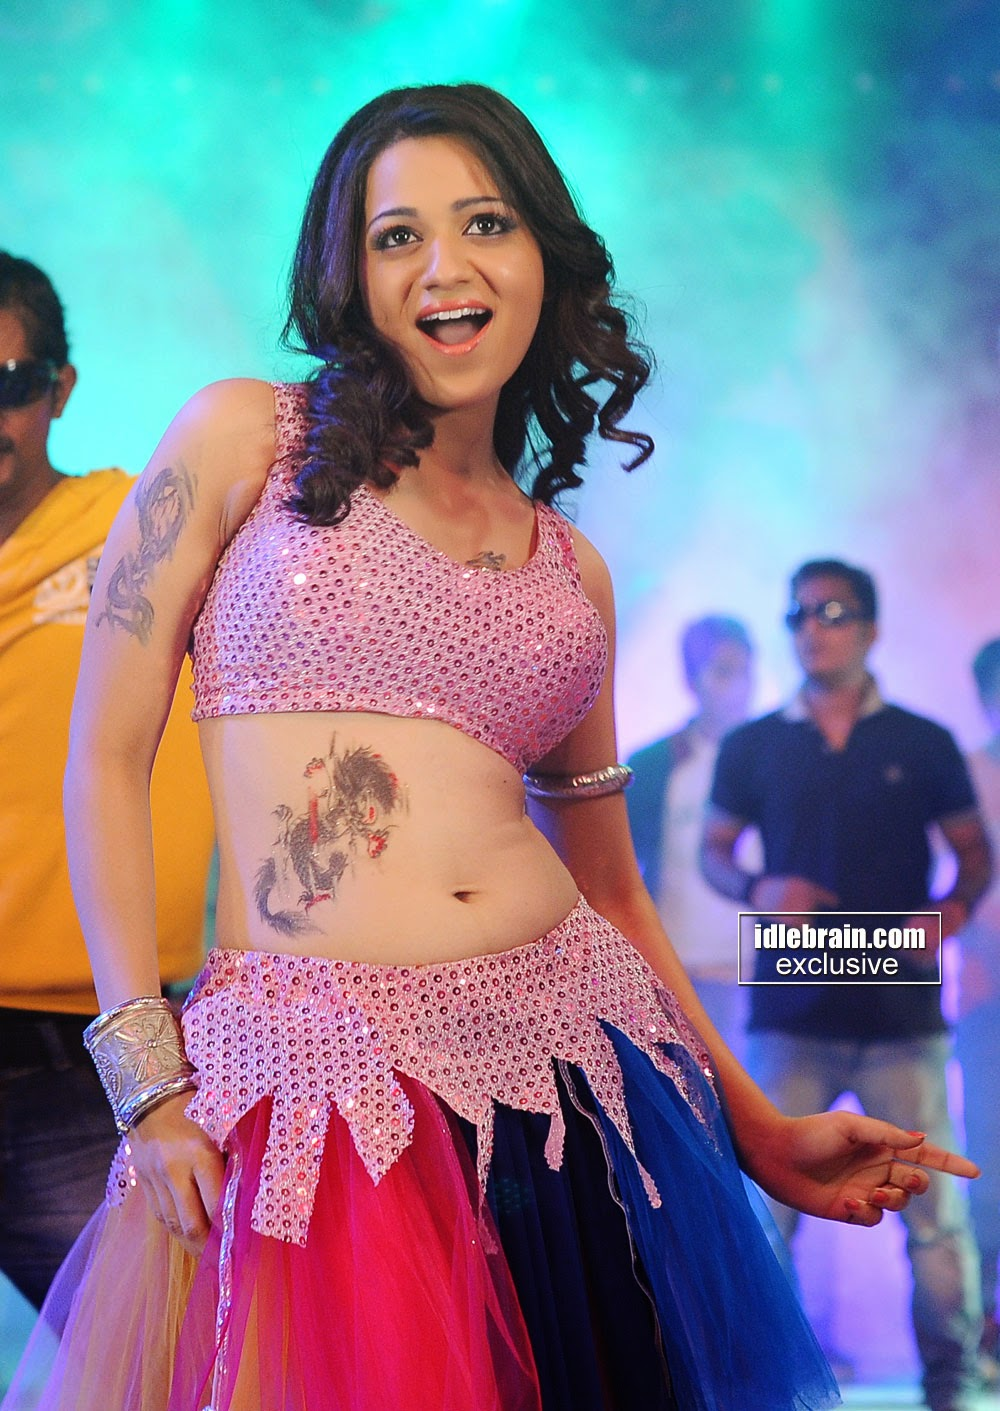 Reshma Tamil Actress Hot Related Keywords & Suggestions